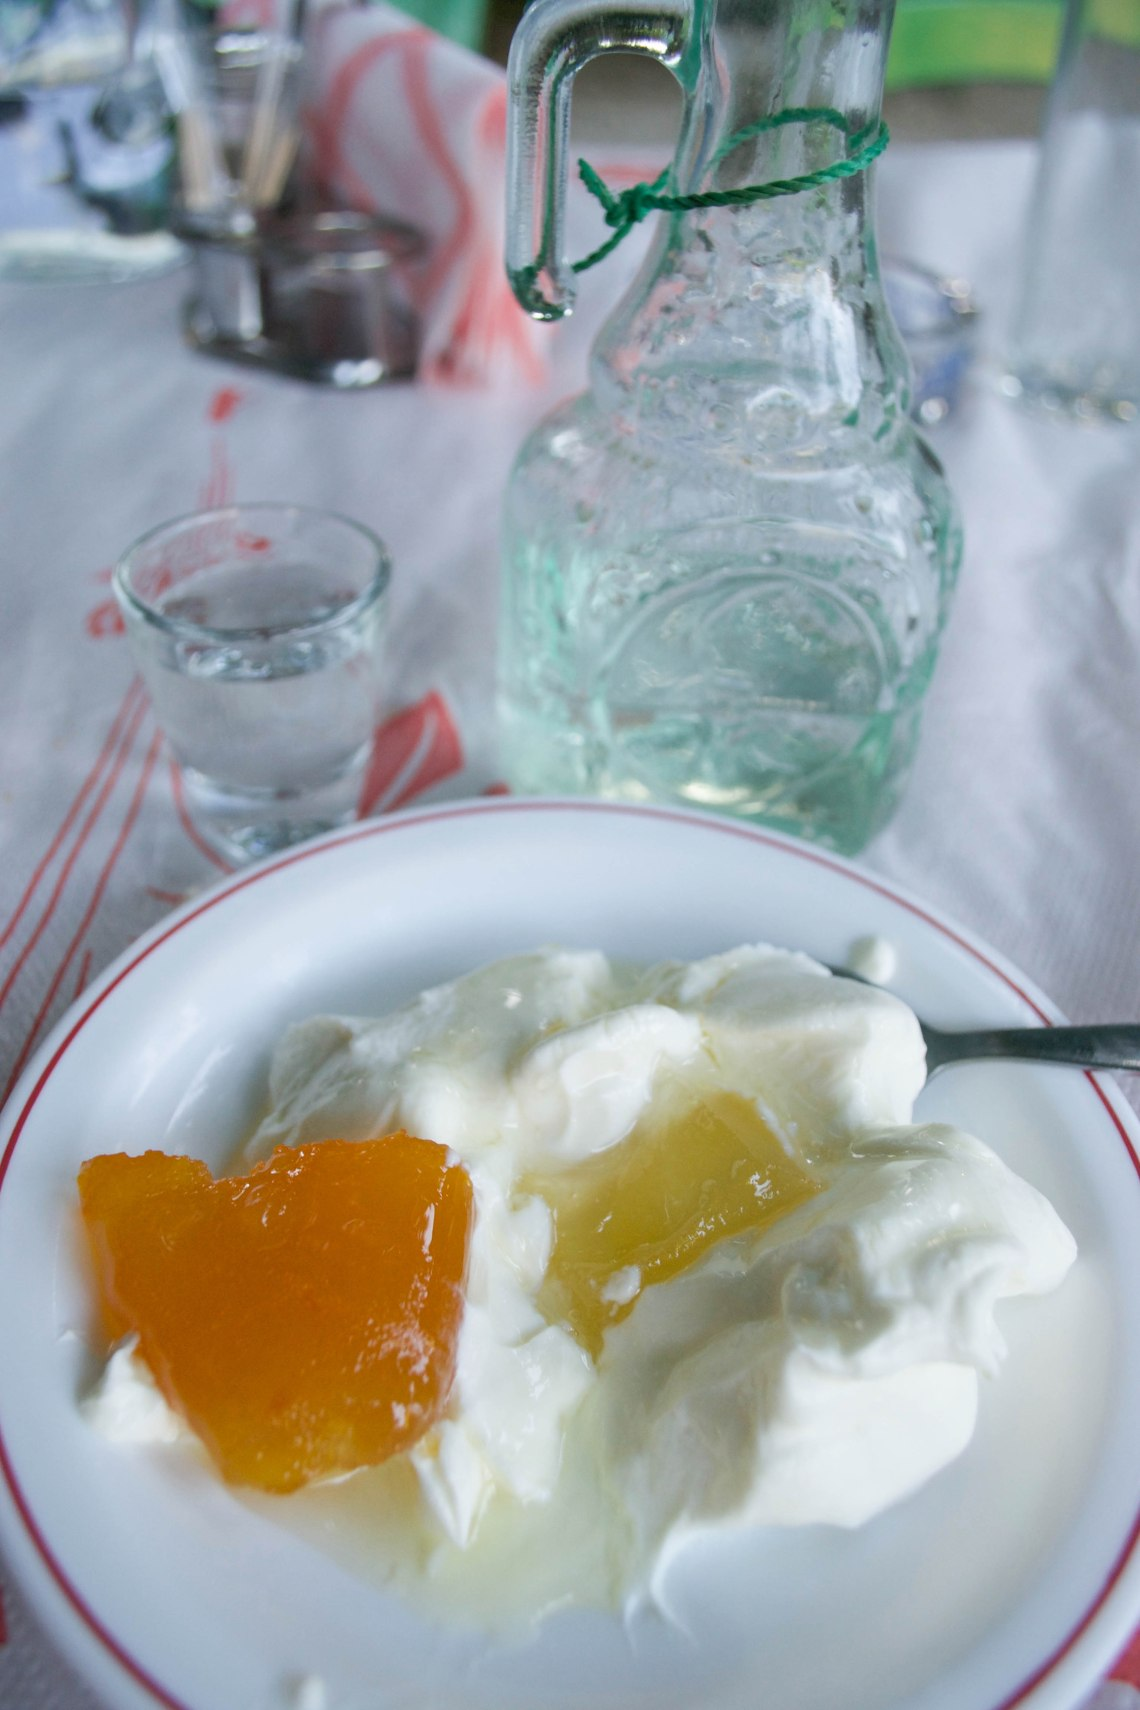 Yogurt - Crete, Greece